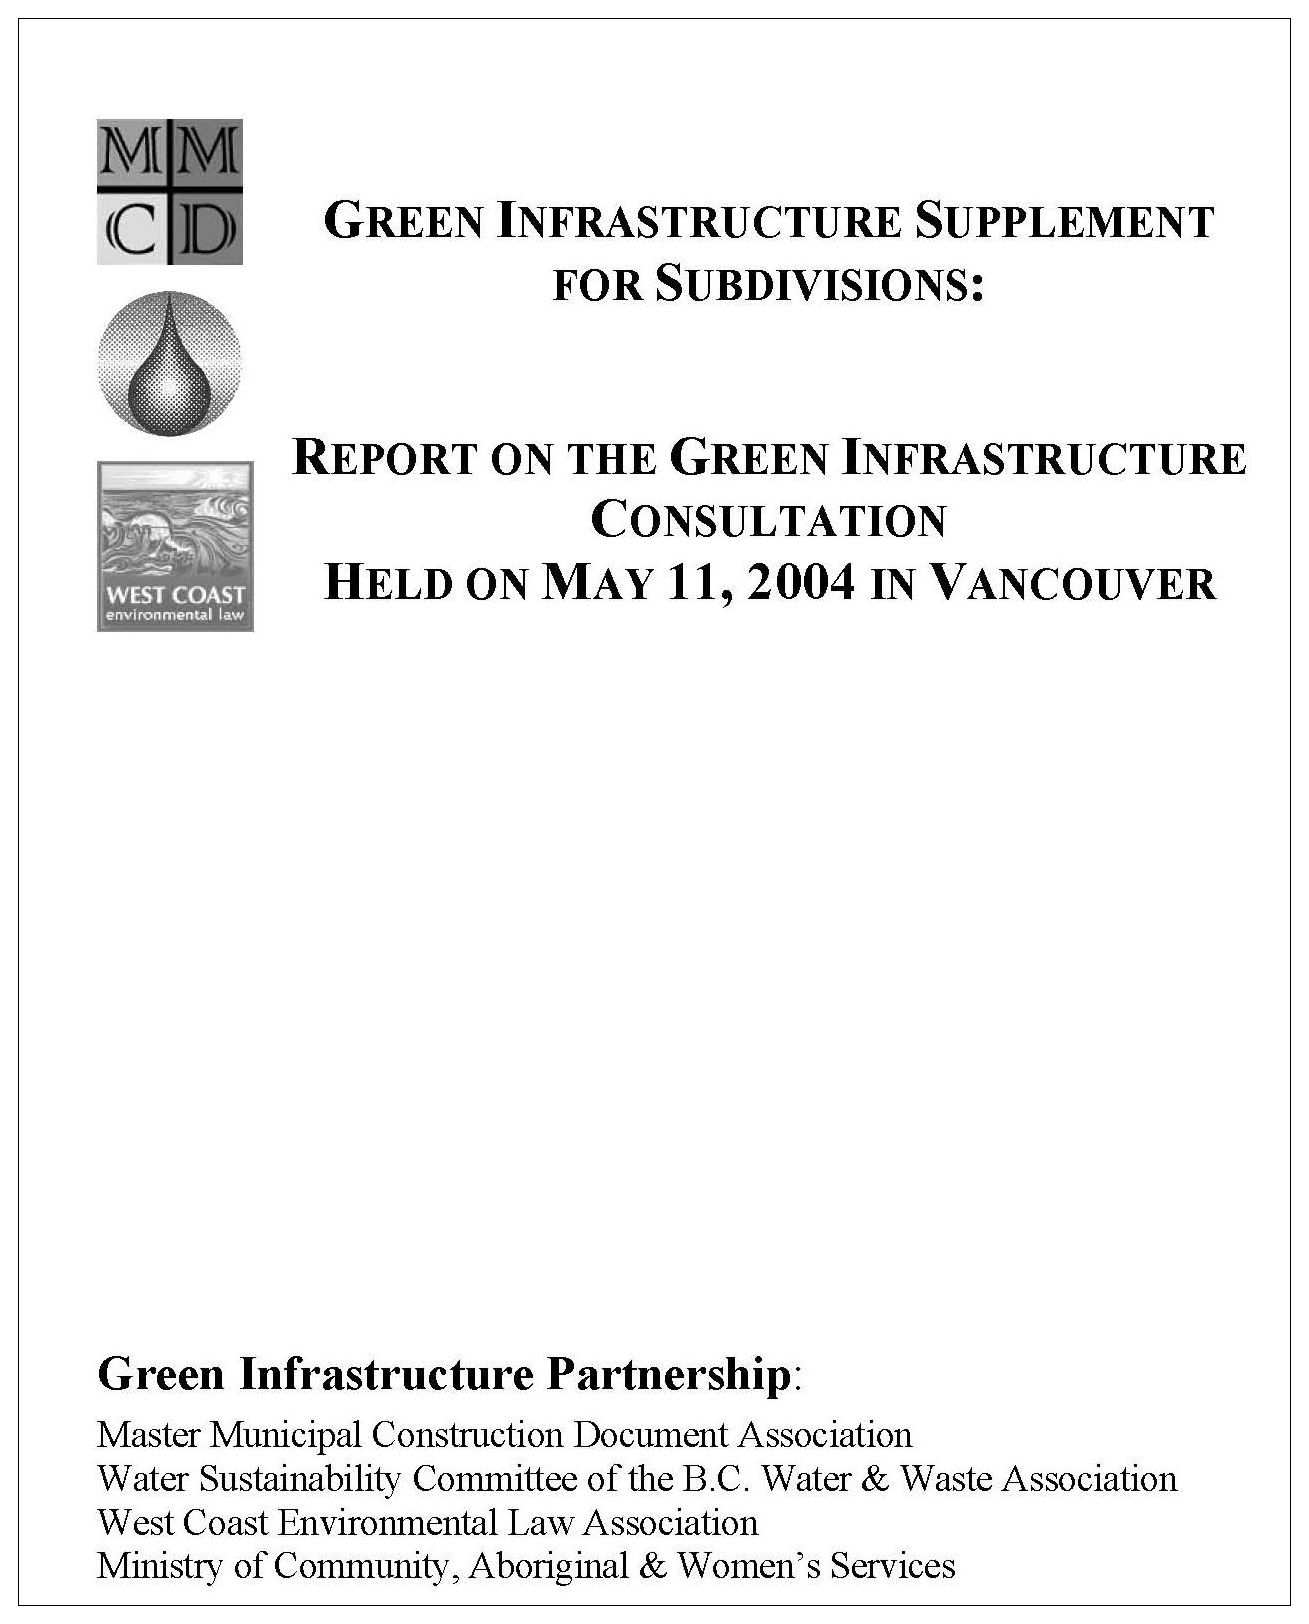 GreenInfrastructure_ConsultationReport_June2004_cover